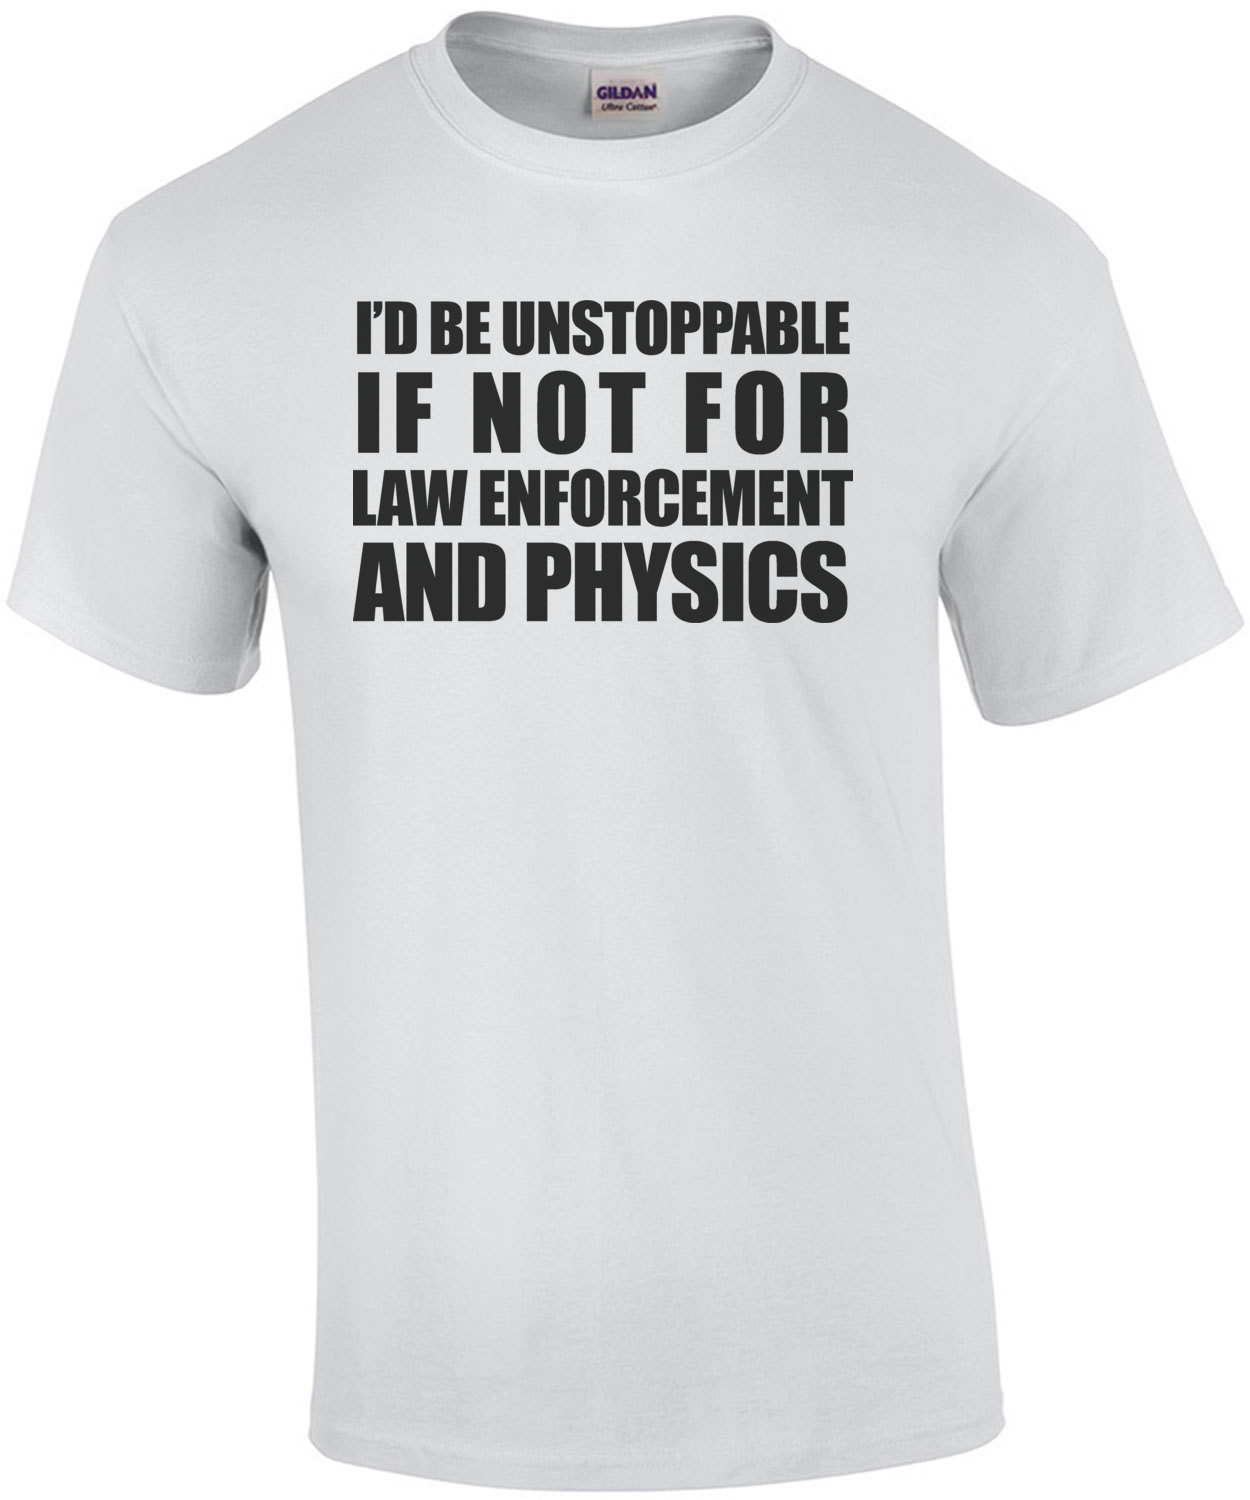 I'D BE UNSTOPPABLE IF NOT FOR LAW ENFORCEMENT AND PHYSICS. Shirt